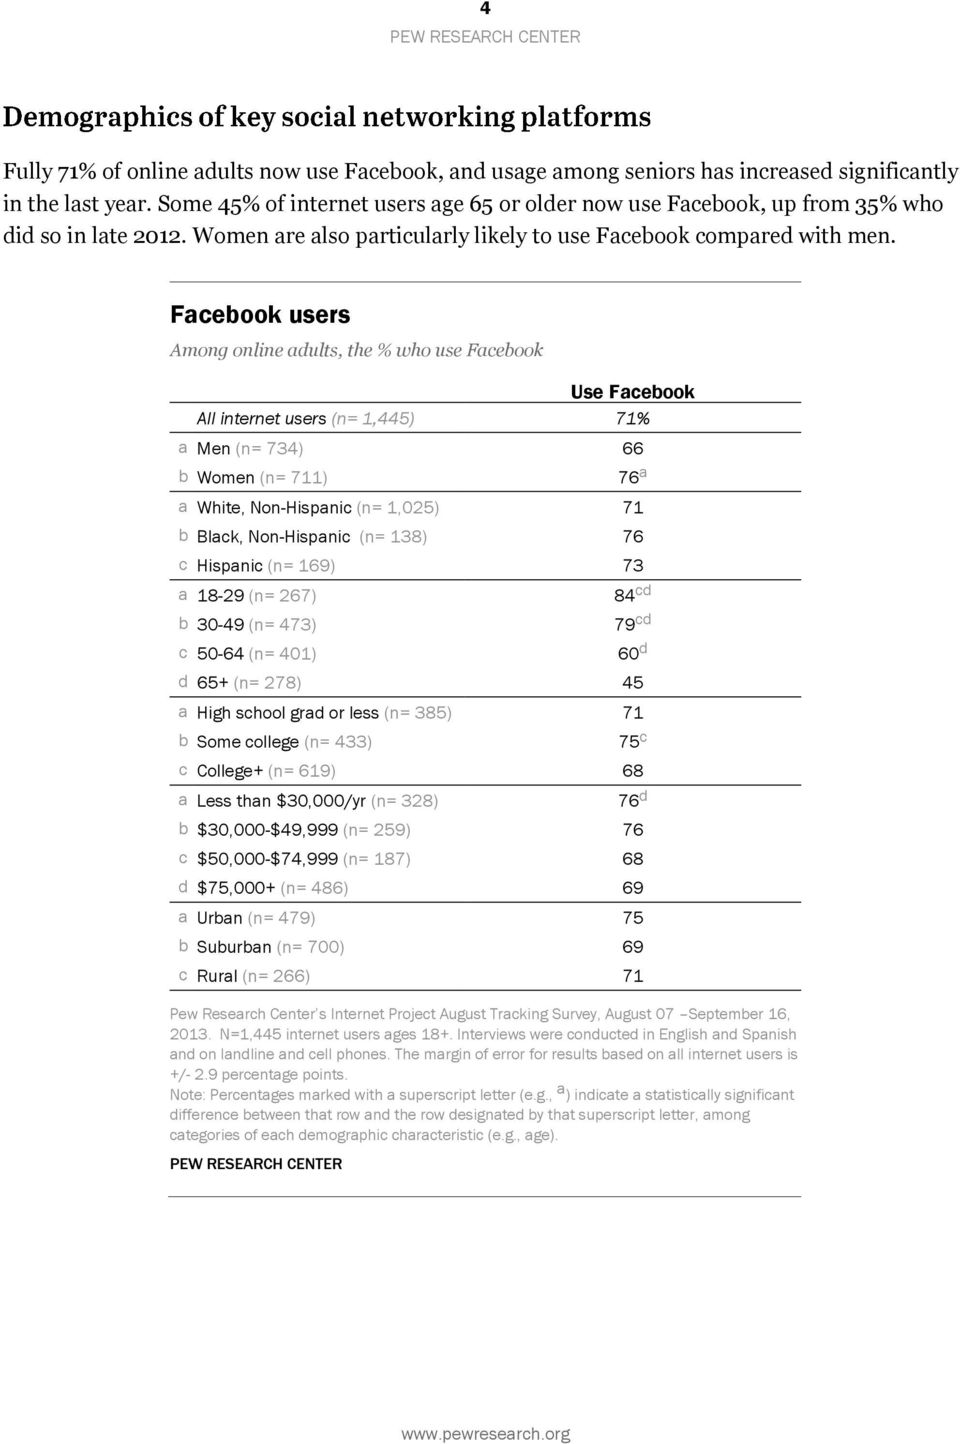 Facebook users Among online adults, the % who use Facebook Use Facebook All internet users (n= 1,445) 71% a Men (n= 734) 66 b Women (n= 711) 76 a a White, Non-Hispanic (n= 1,025) 71 b Black,